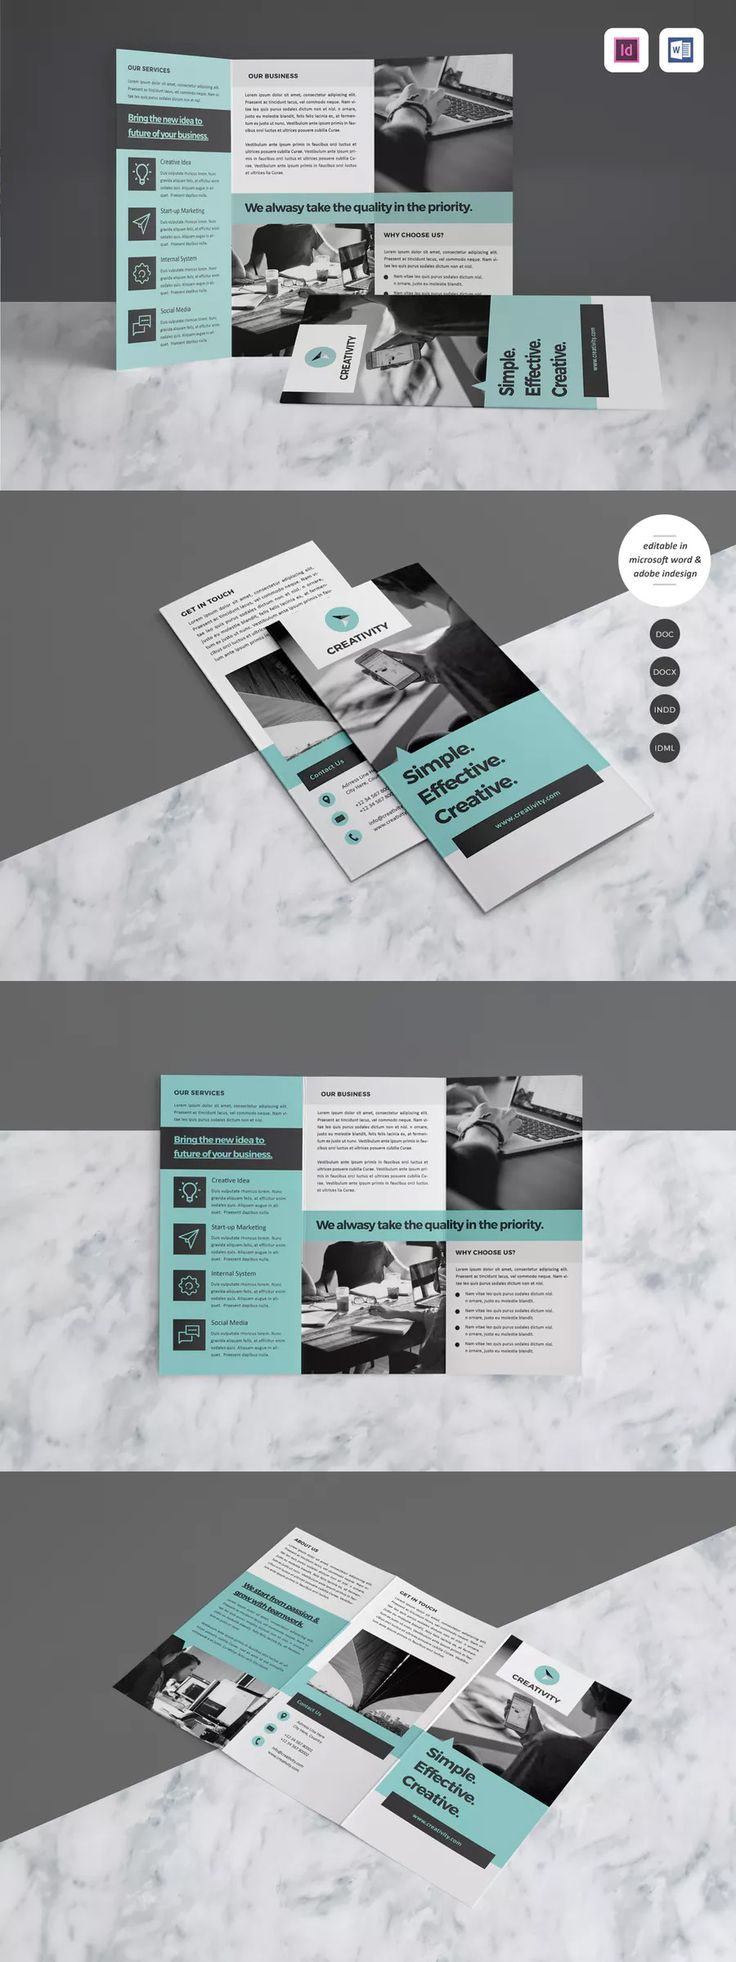 444 best 折页 images on Pinterest   Brochures, Layout design and ...